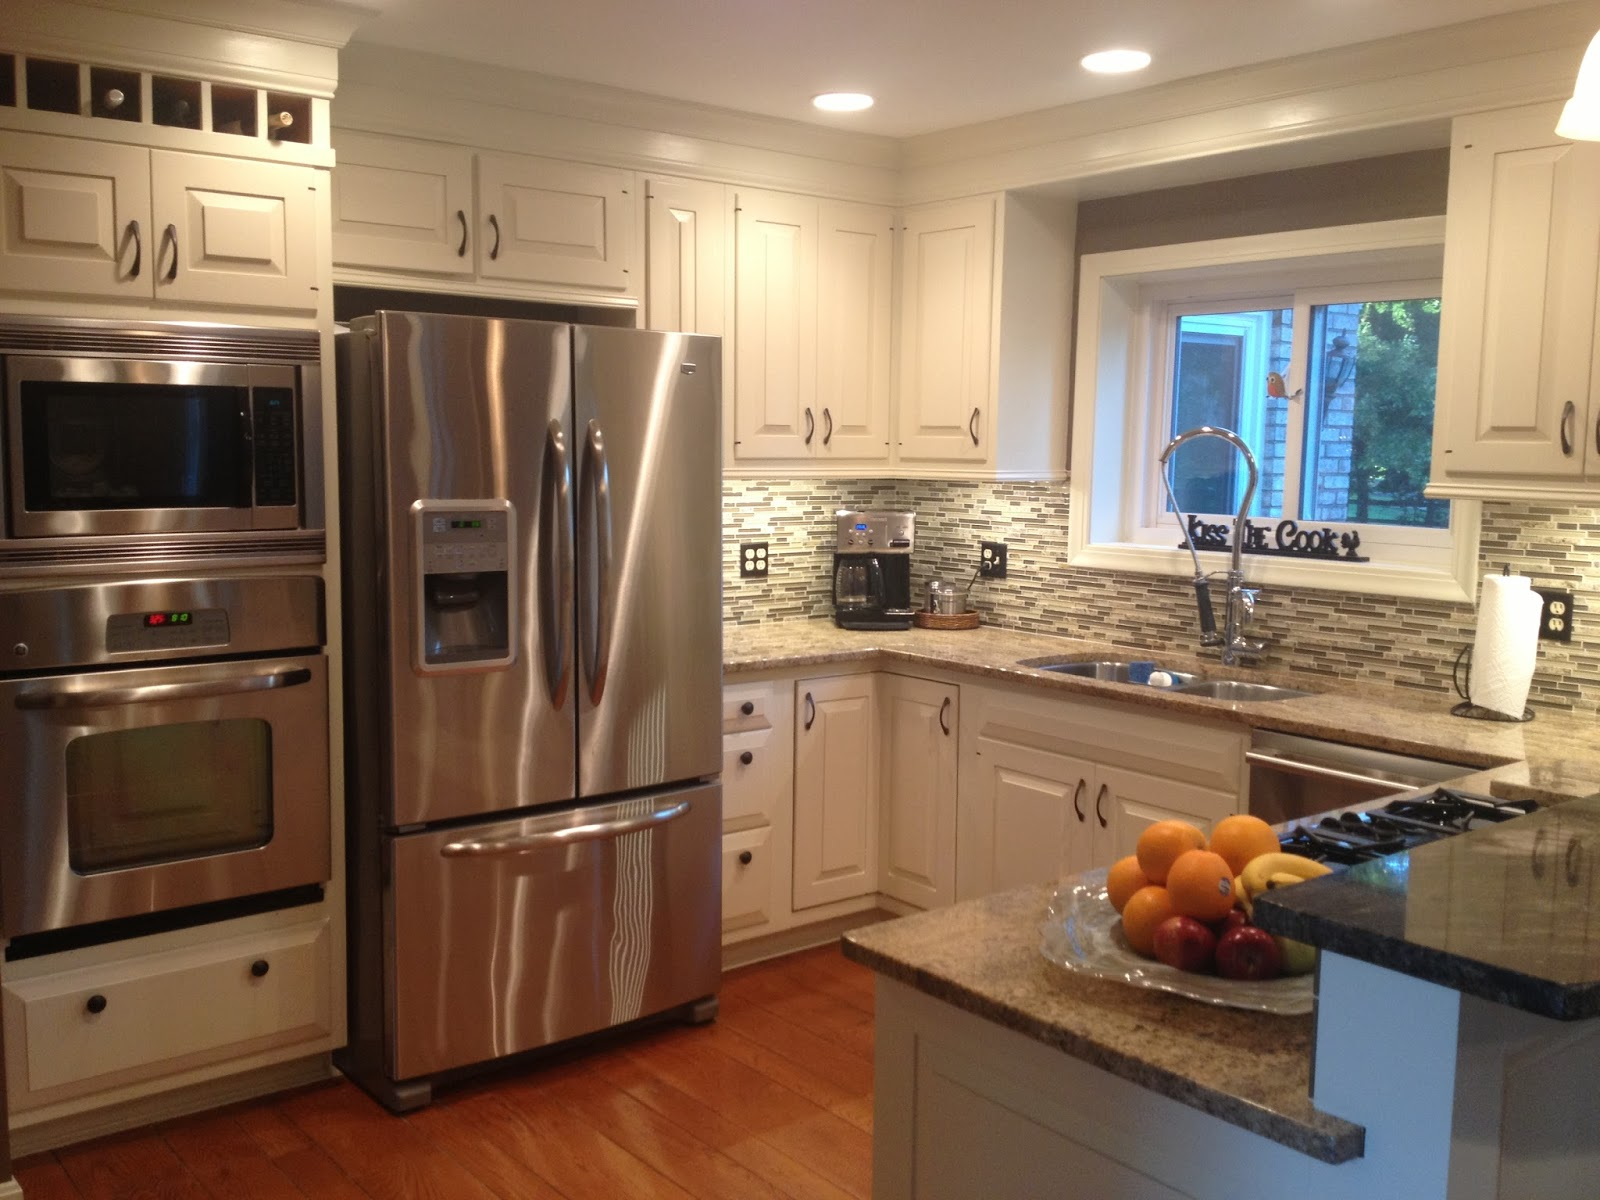 Four seasons style the new kitchen remodel on a budget for New kitchen renovation